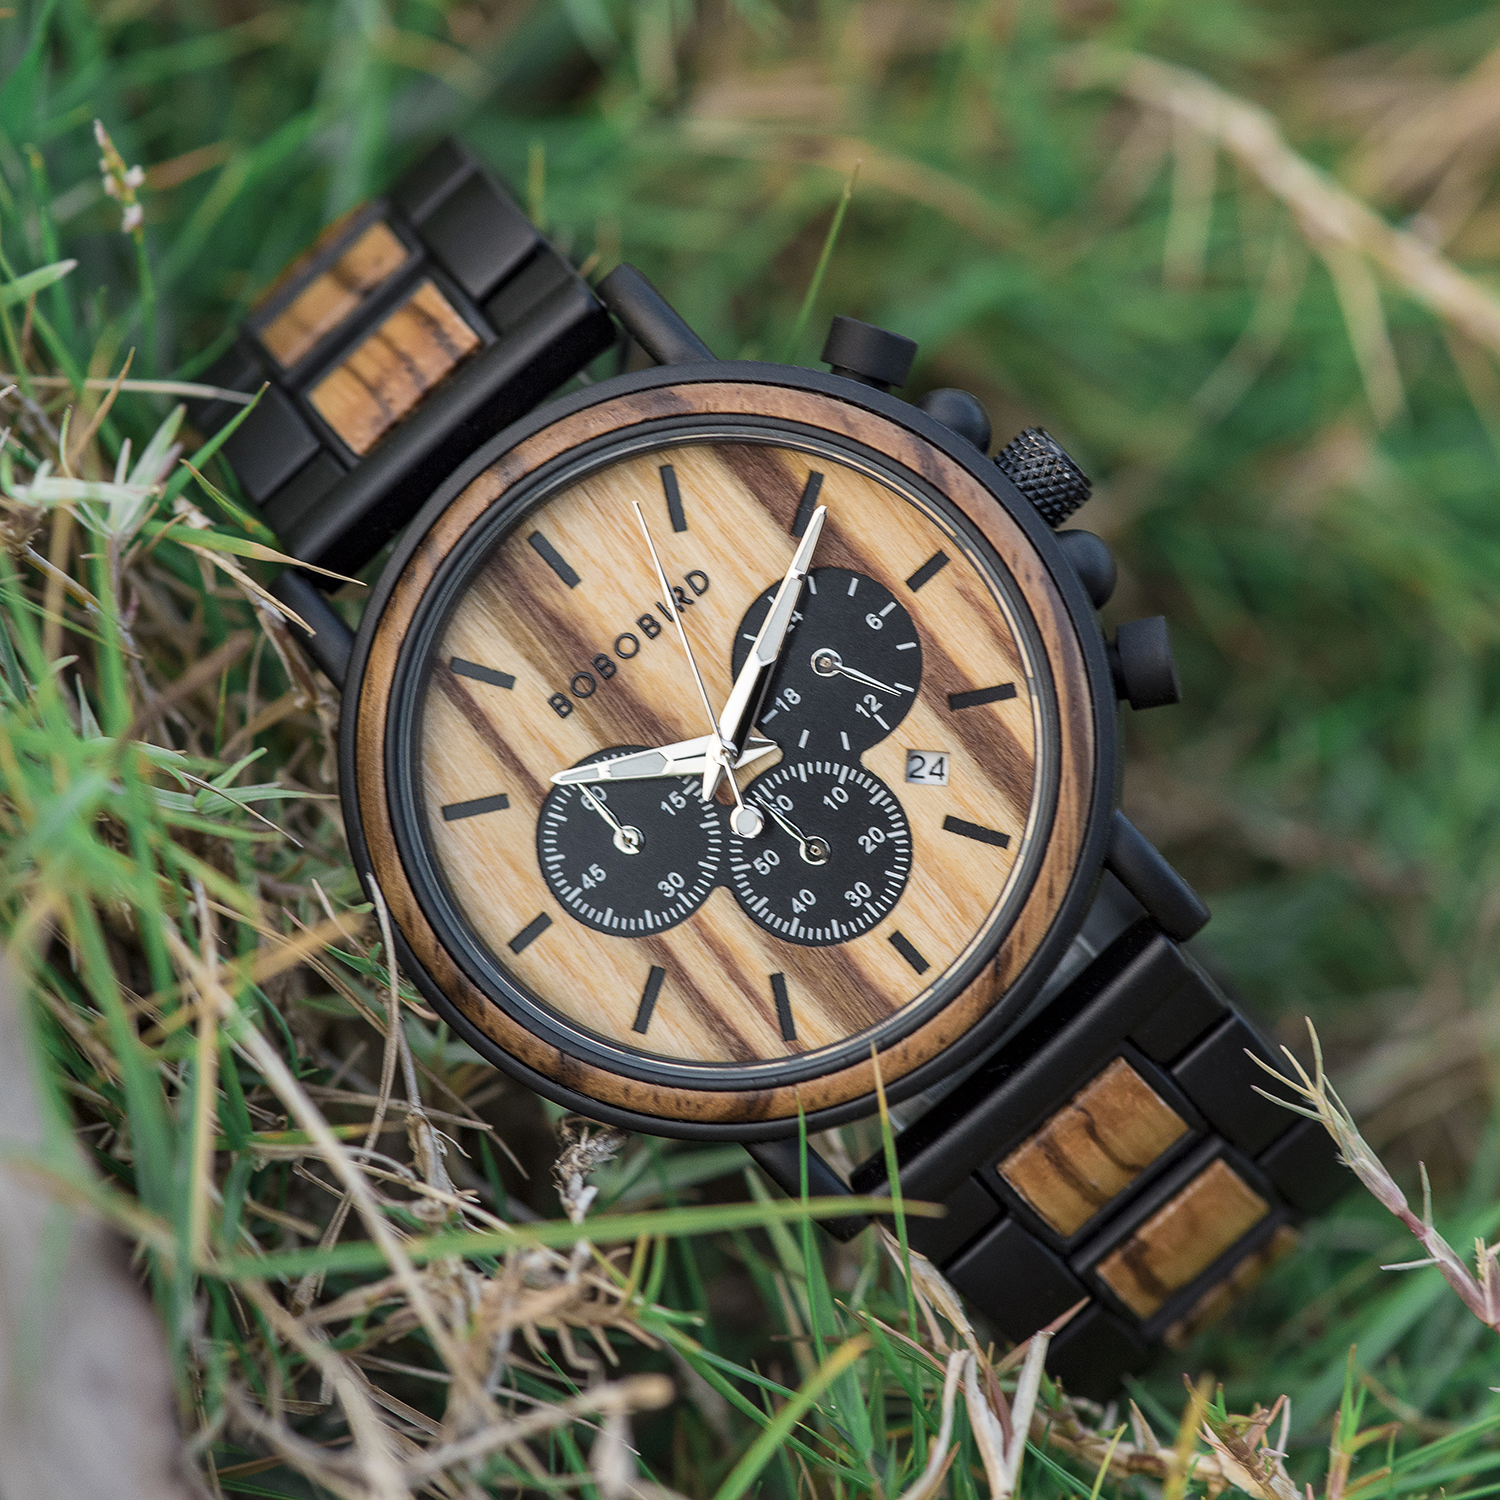 Image 5 - BOBO BIRD Wooden Watch Men erkek kol saati Luxury Stylish Wood Timepieces Chronograph Military Quartz Watches in Wood Gift Box-in Quartz Watches from Watches